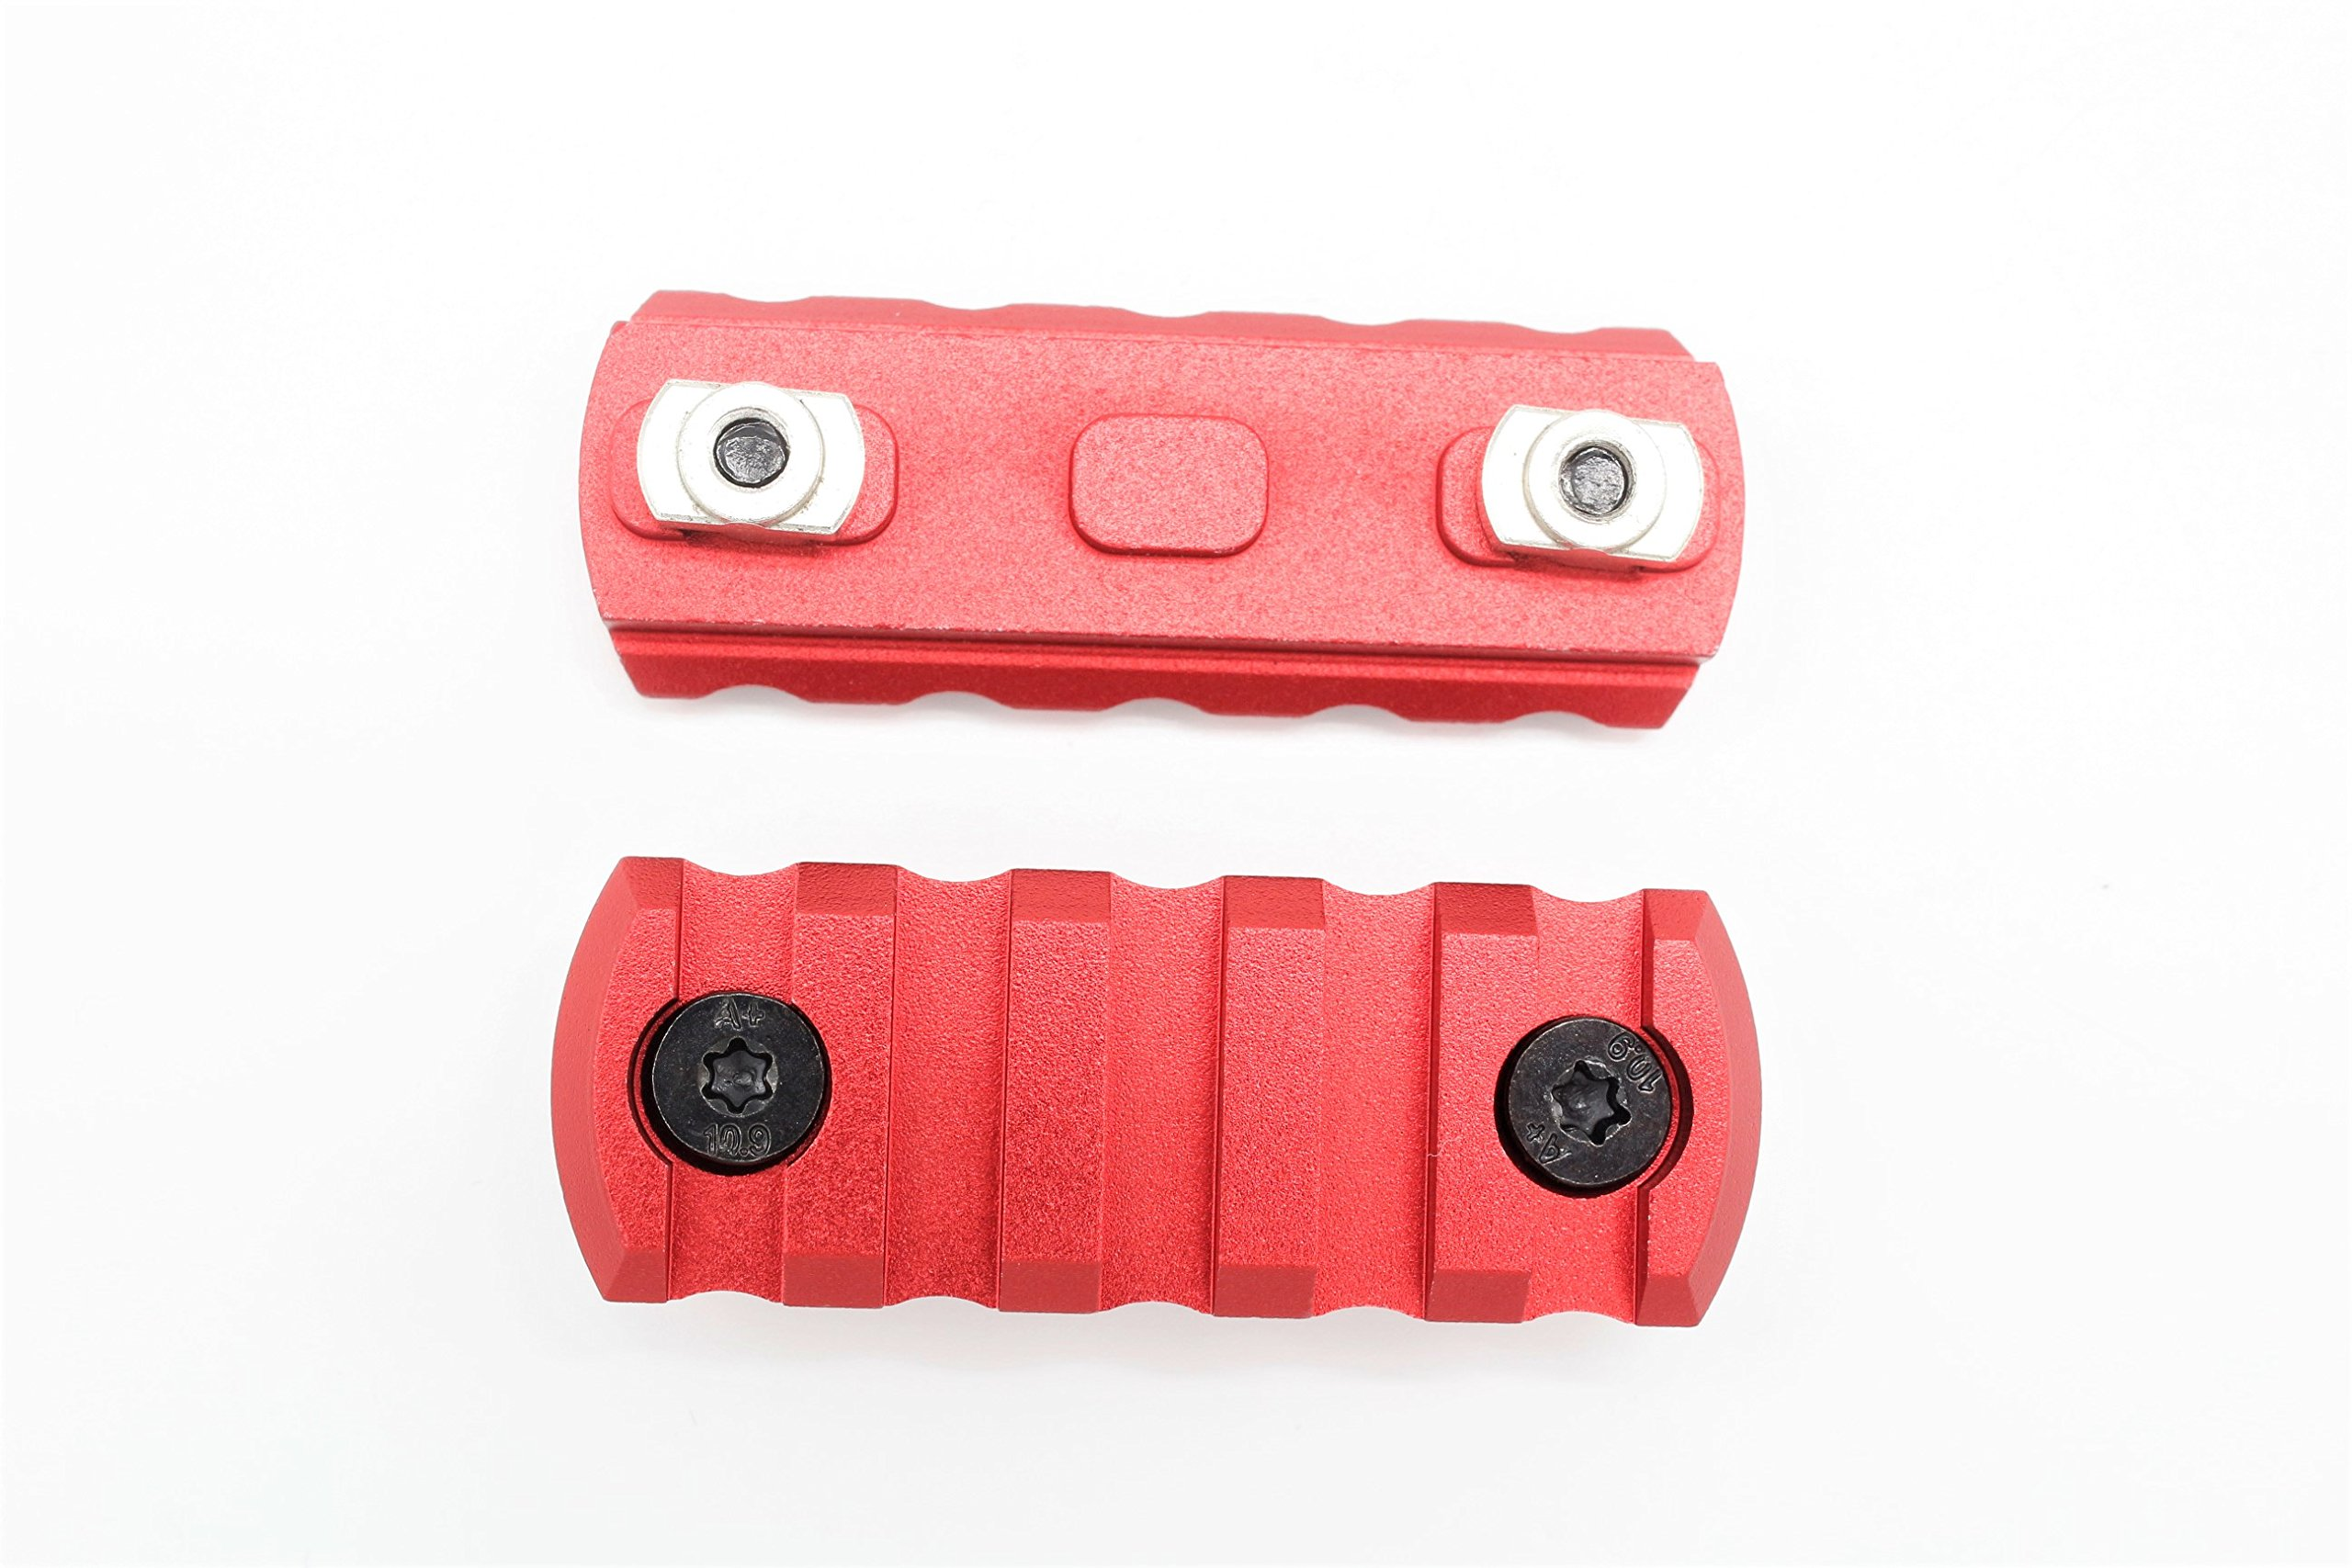 5 Slots M-lok Picatinny/Weaver Rail Sections Red Anodized for M-lok Handguard System by Active-8